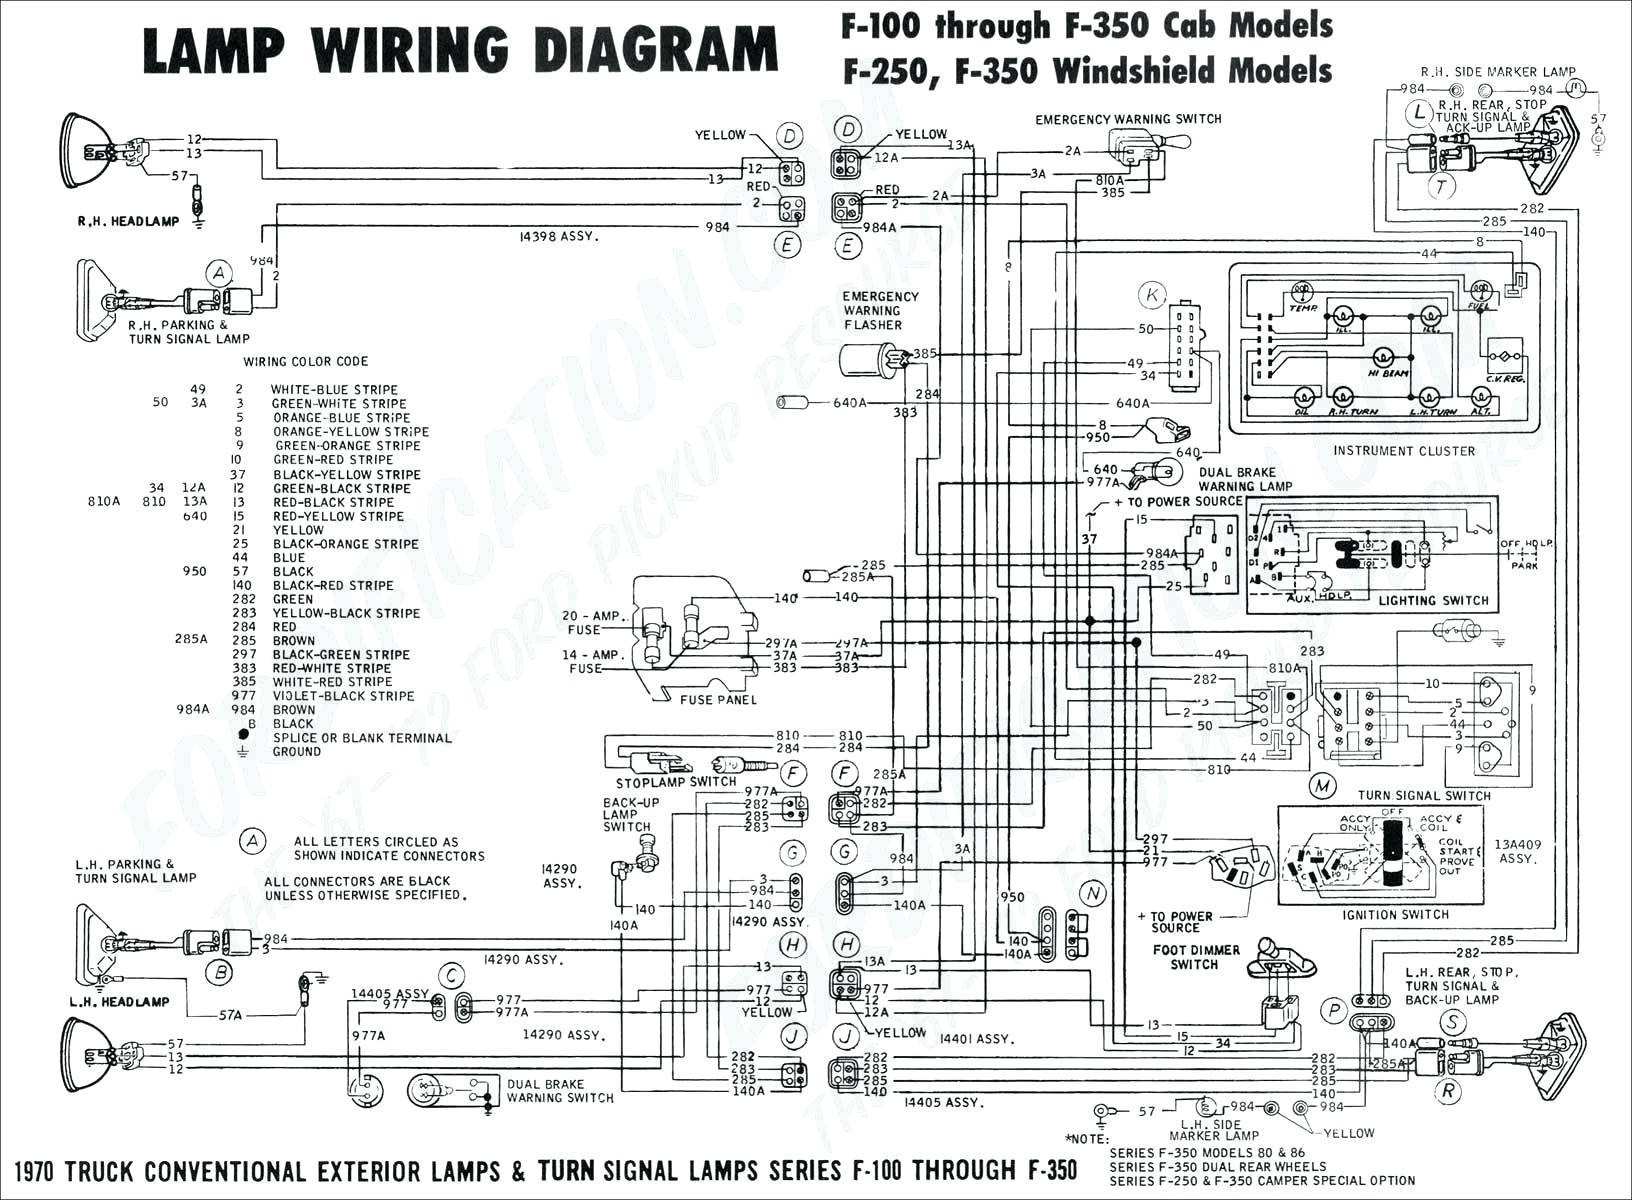 1984 Chevy Truck Fuse Box Diagram Wiring Diagram for Home Fuse Box New 94  ford F53